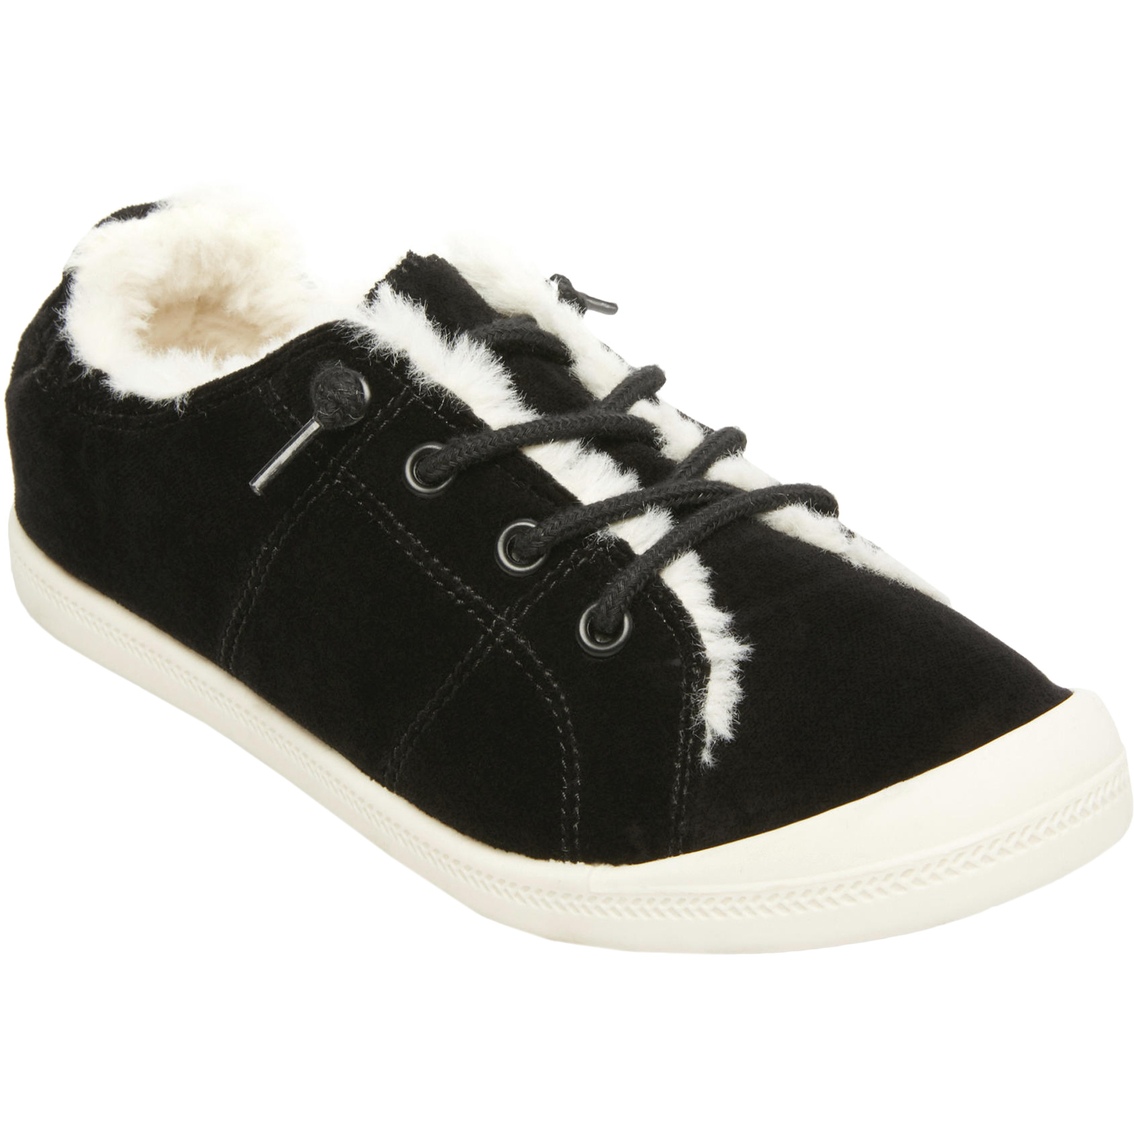 5050fa19bfbc6b Madden Girl Bailey Faux Fur Lined Sneakers